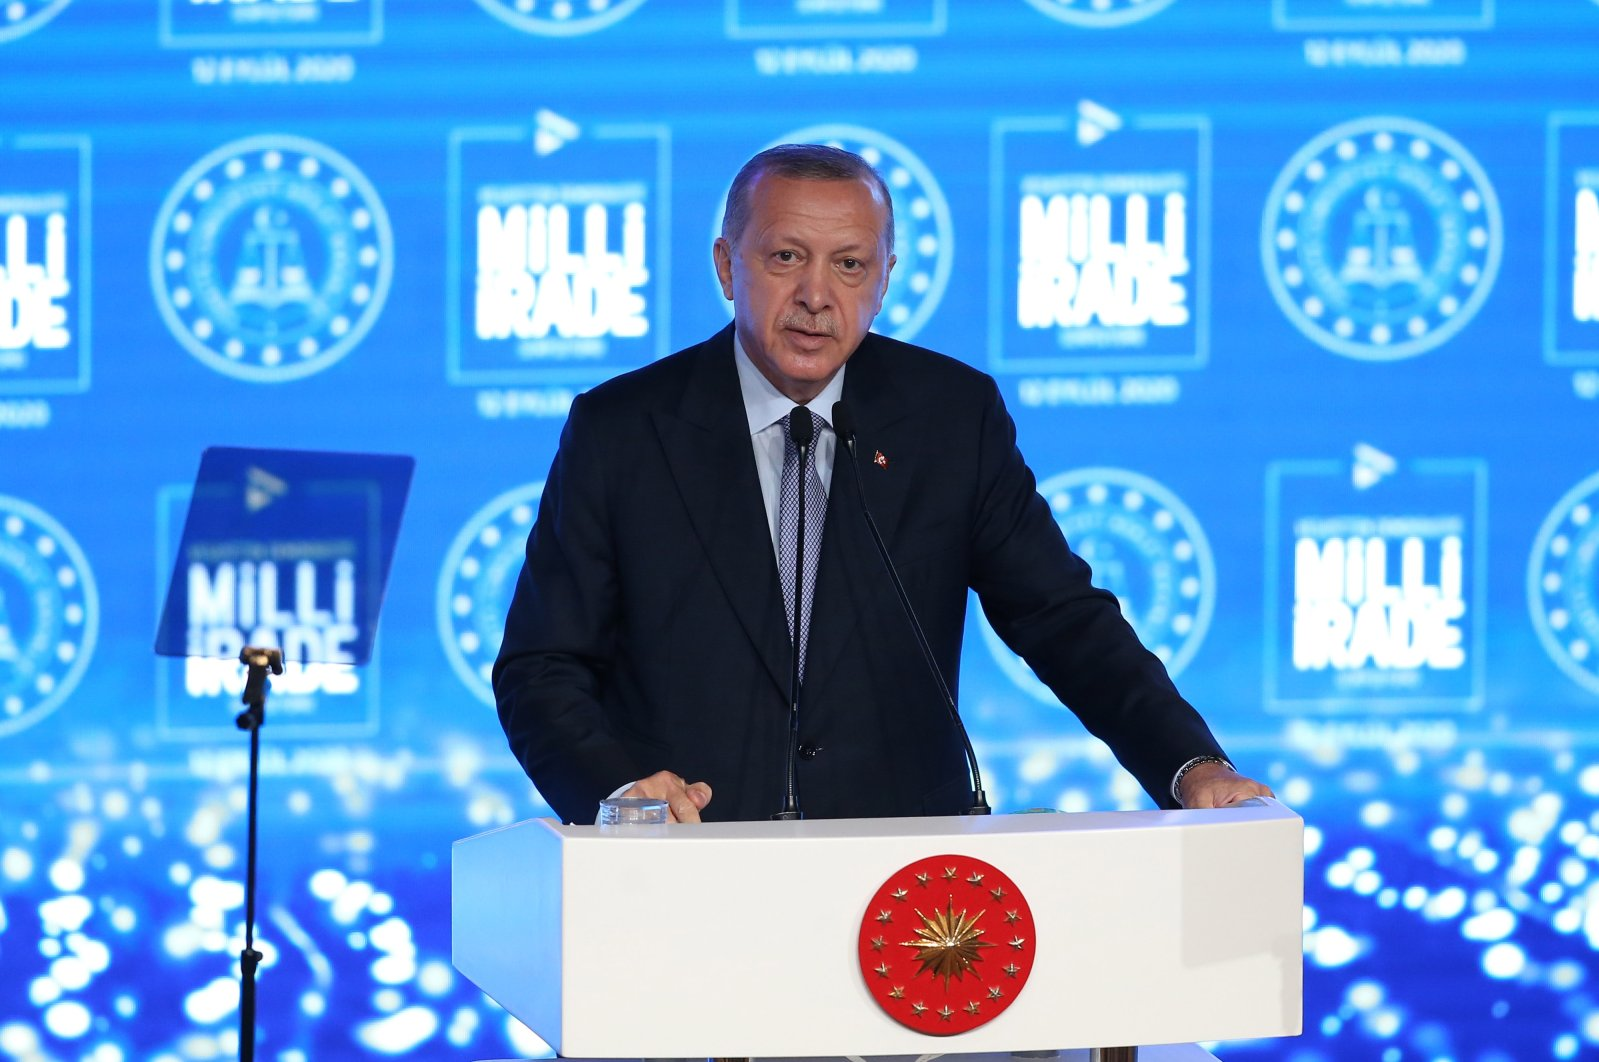 President Recep Tayyip Erdoğan speaks during a meeting on Democracy and Freedom Island in the waters near Istanbul, Turkey, Sept. 12, 2020. (AA Photo)